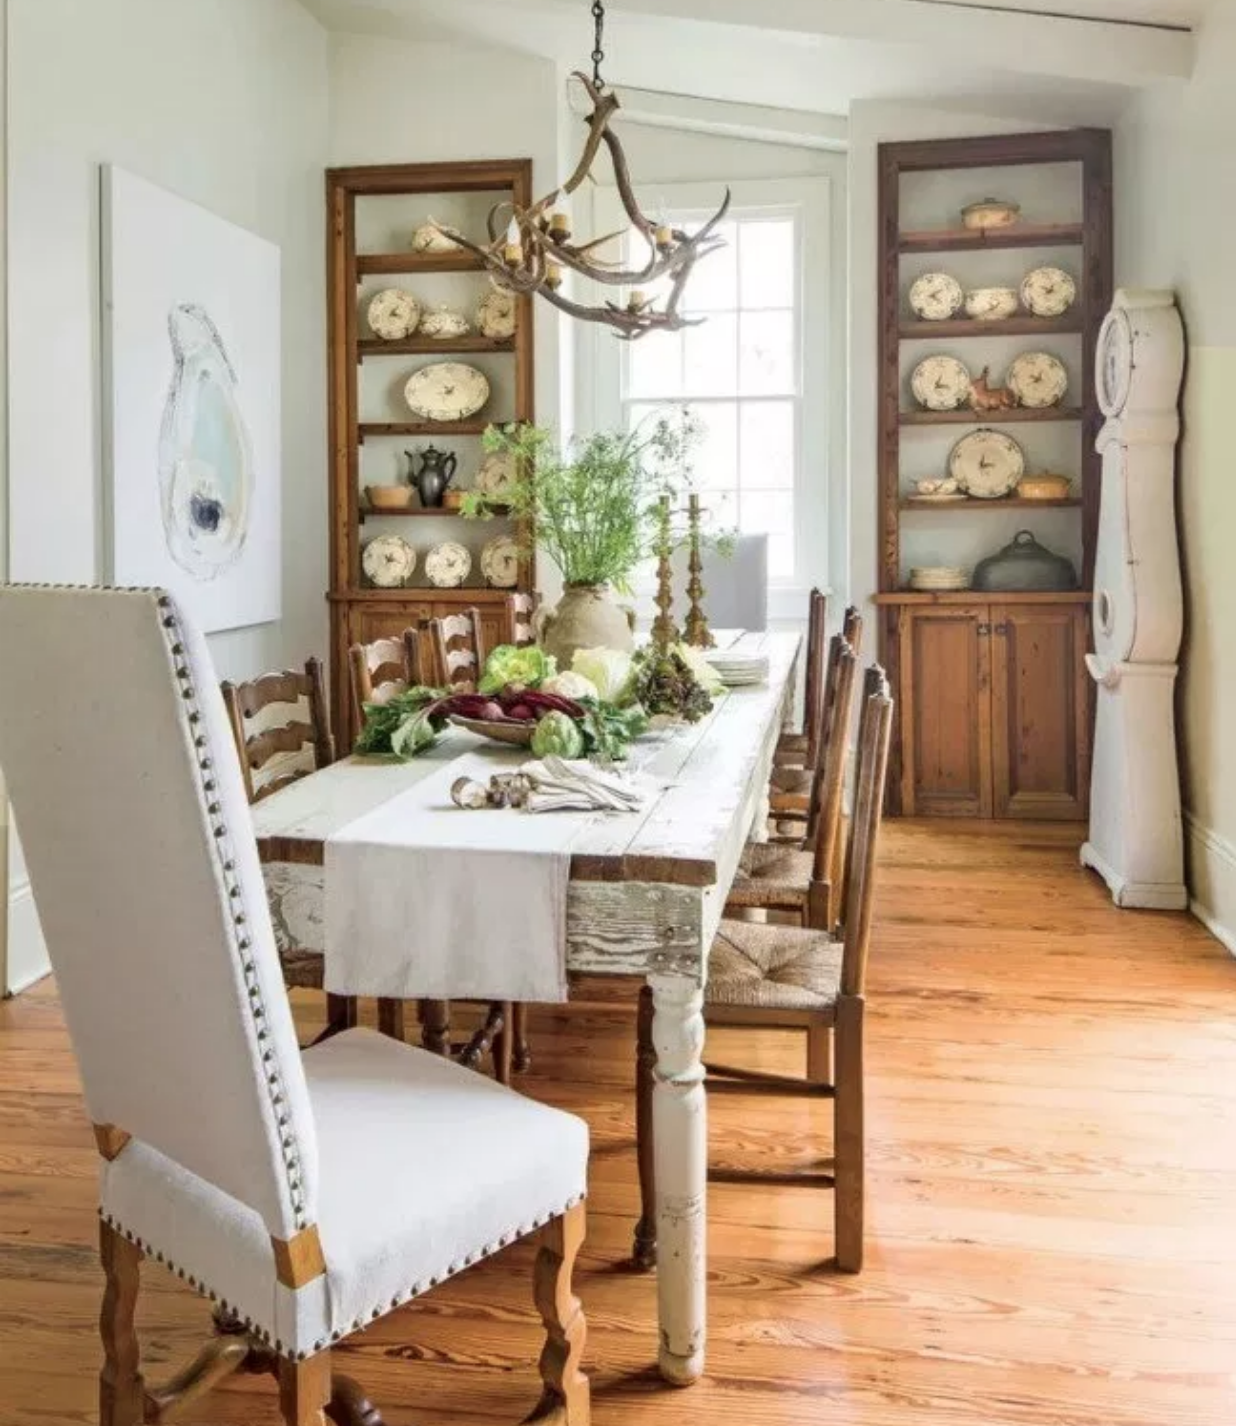 The 25 Most Beautiful Dining Rooms on Pinterest in 25  Stylish